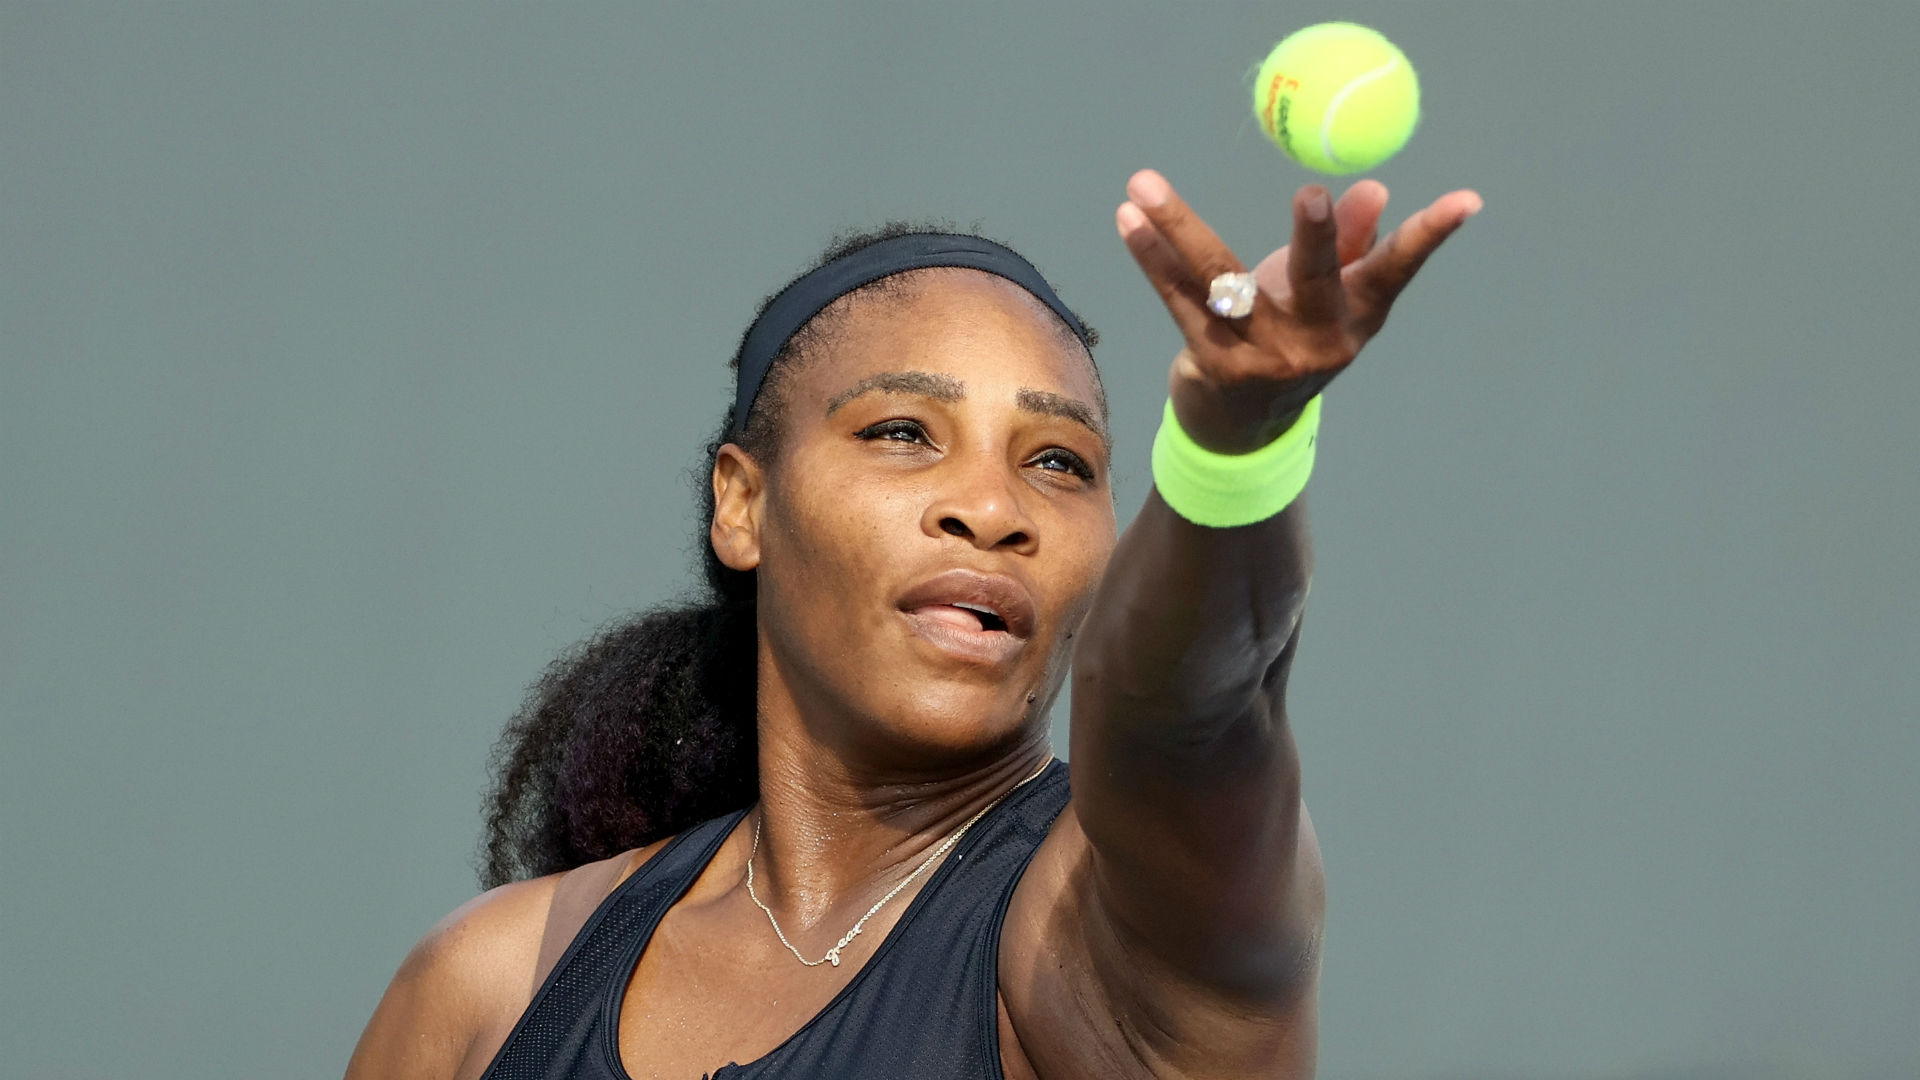 Serena Williams: All of 2020 deserves asterisk, not just U.S. Open